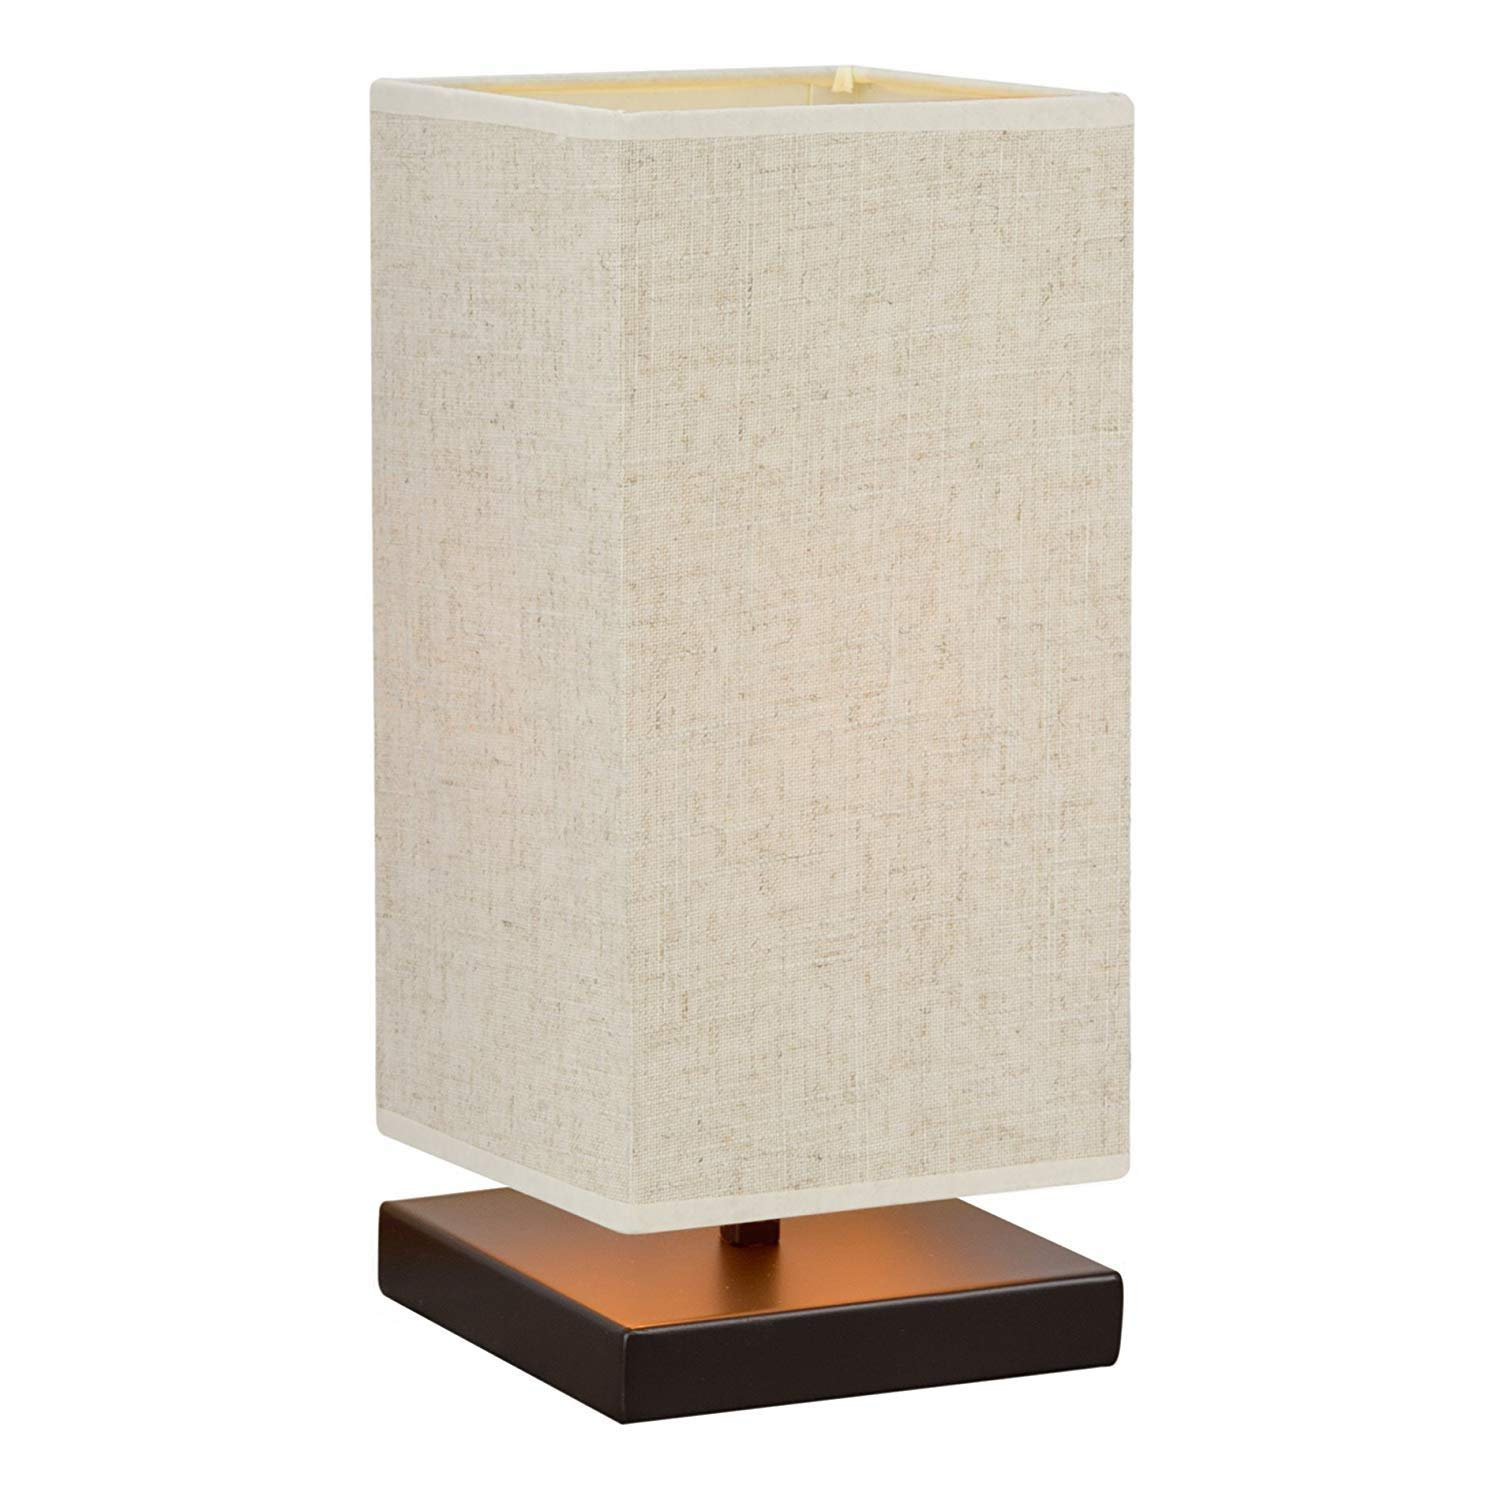 Revel TOUCH Bedside Table Lamp